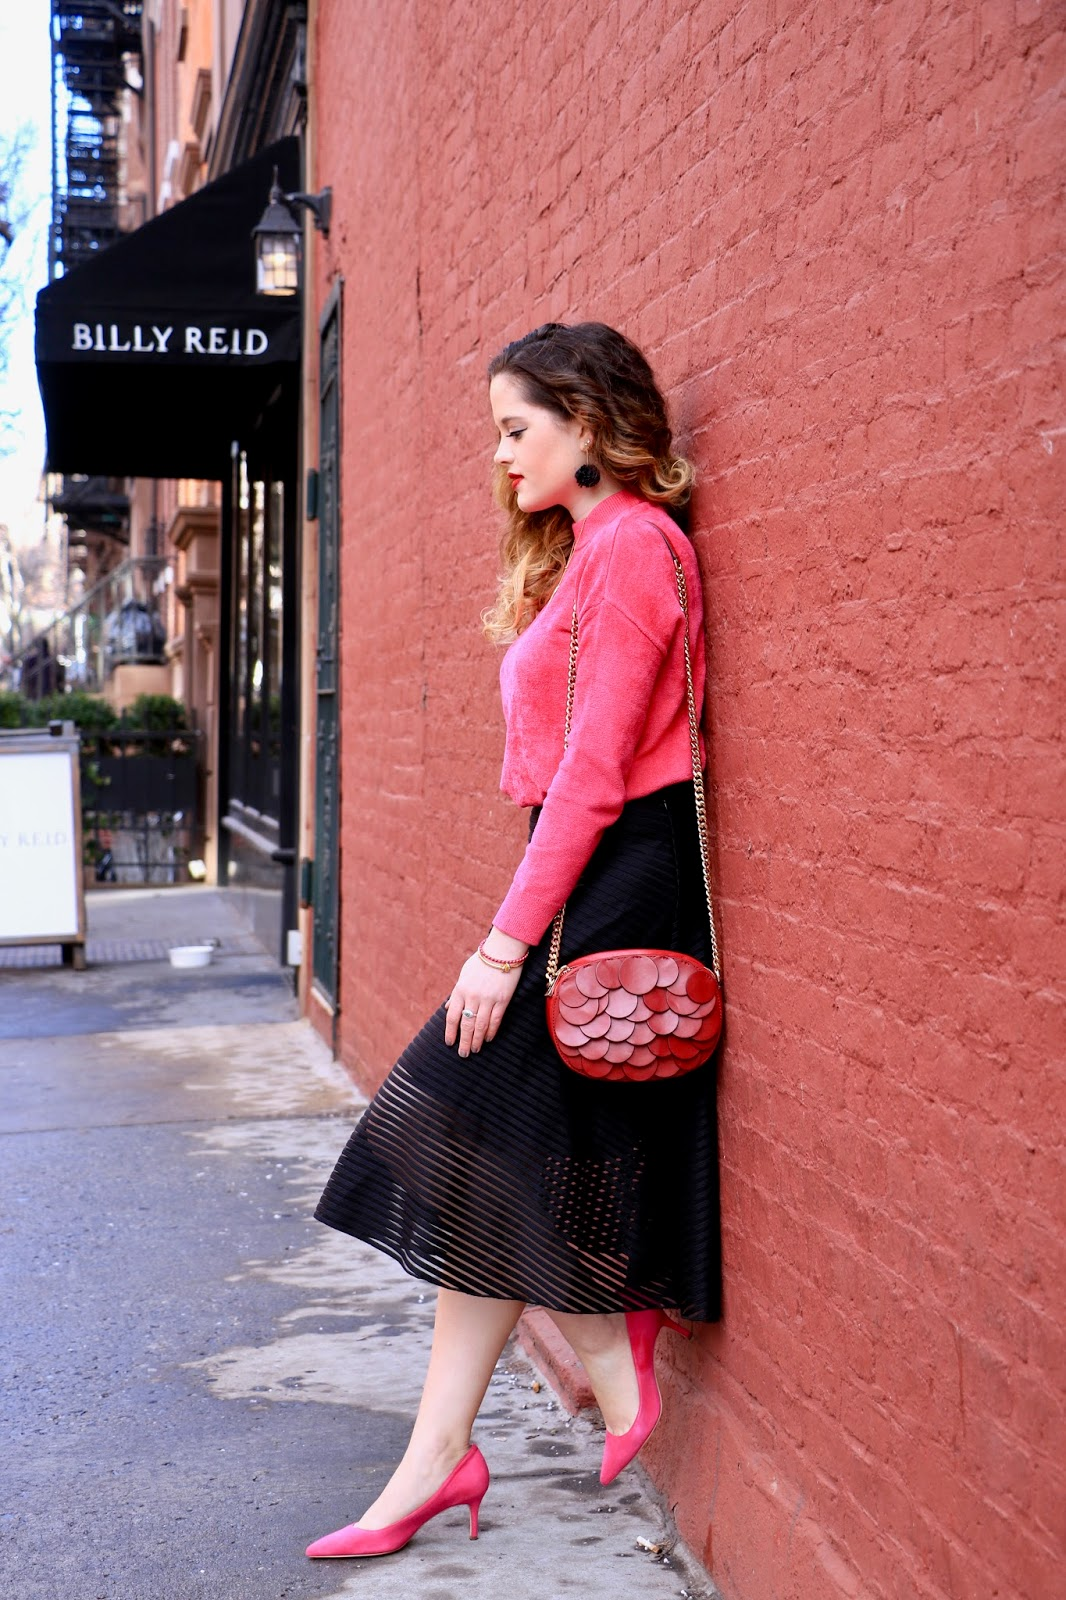 Nyc fashion blogger Kathleen Harper's street style pics